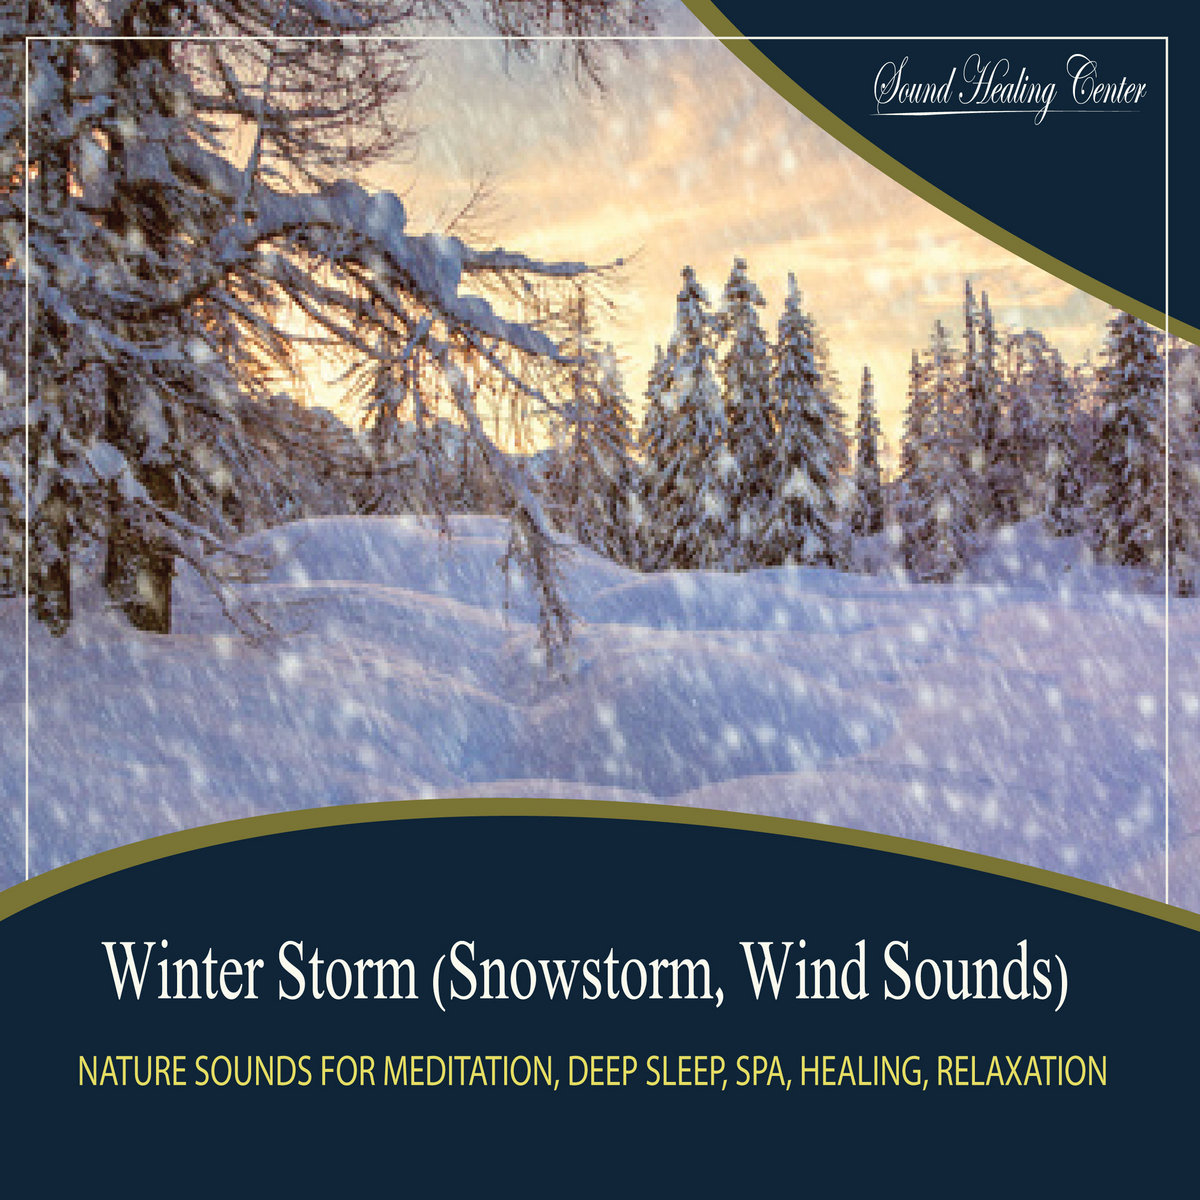 Winter Storm Snowstorm, Wind Sounds Nature Sounds for